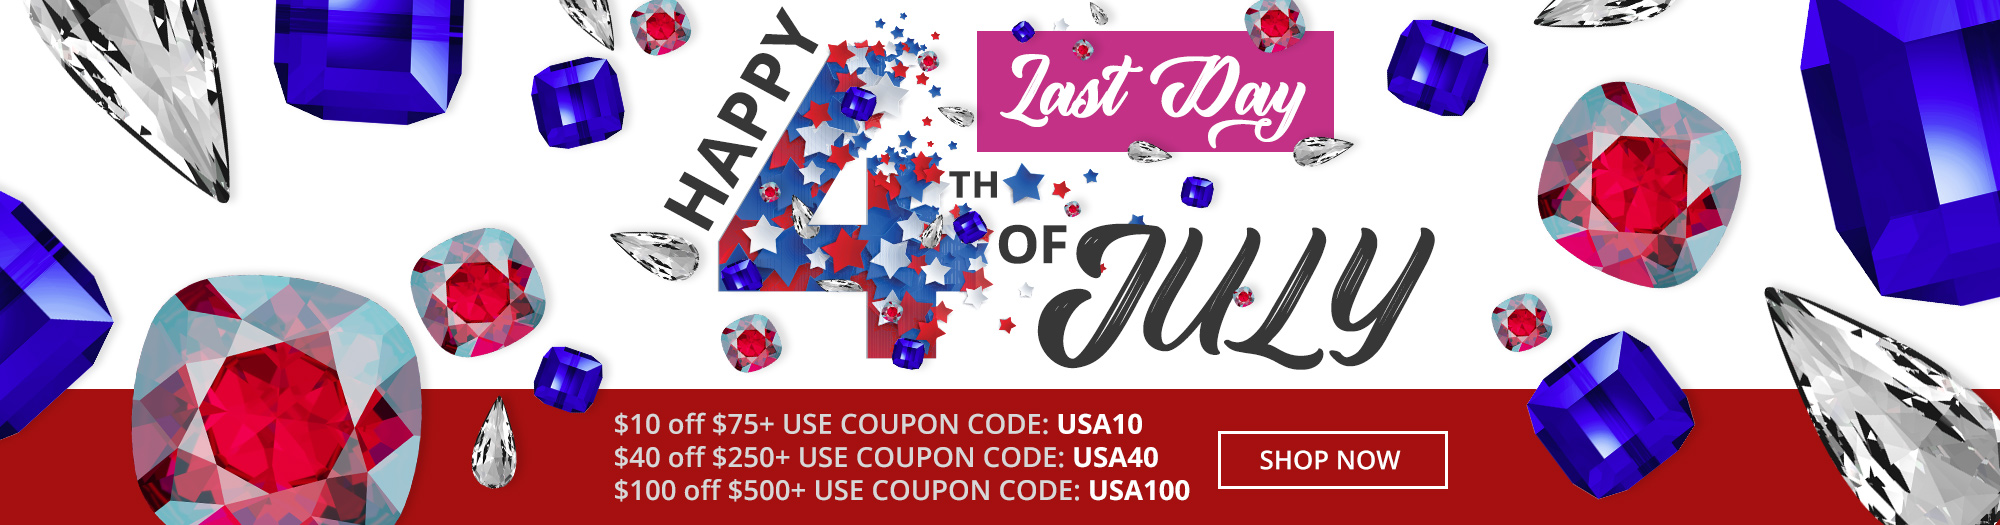 4th of July - Last Day Sale